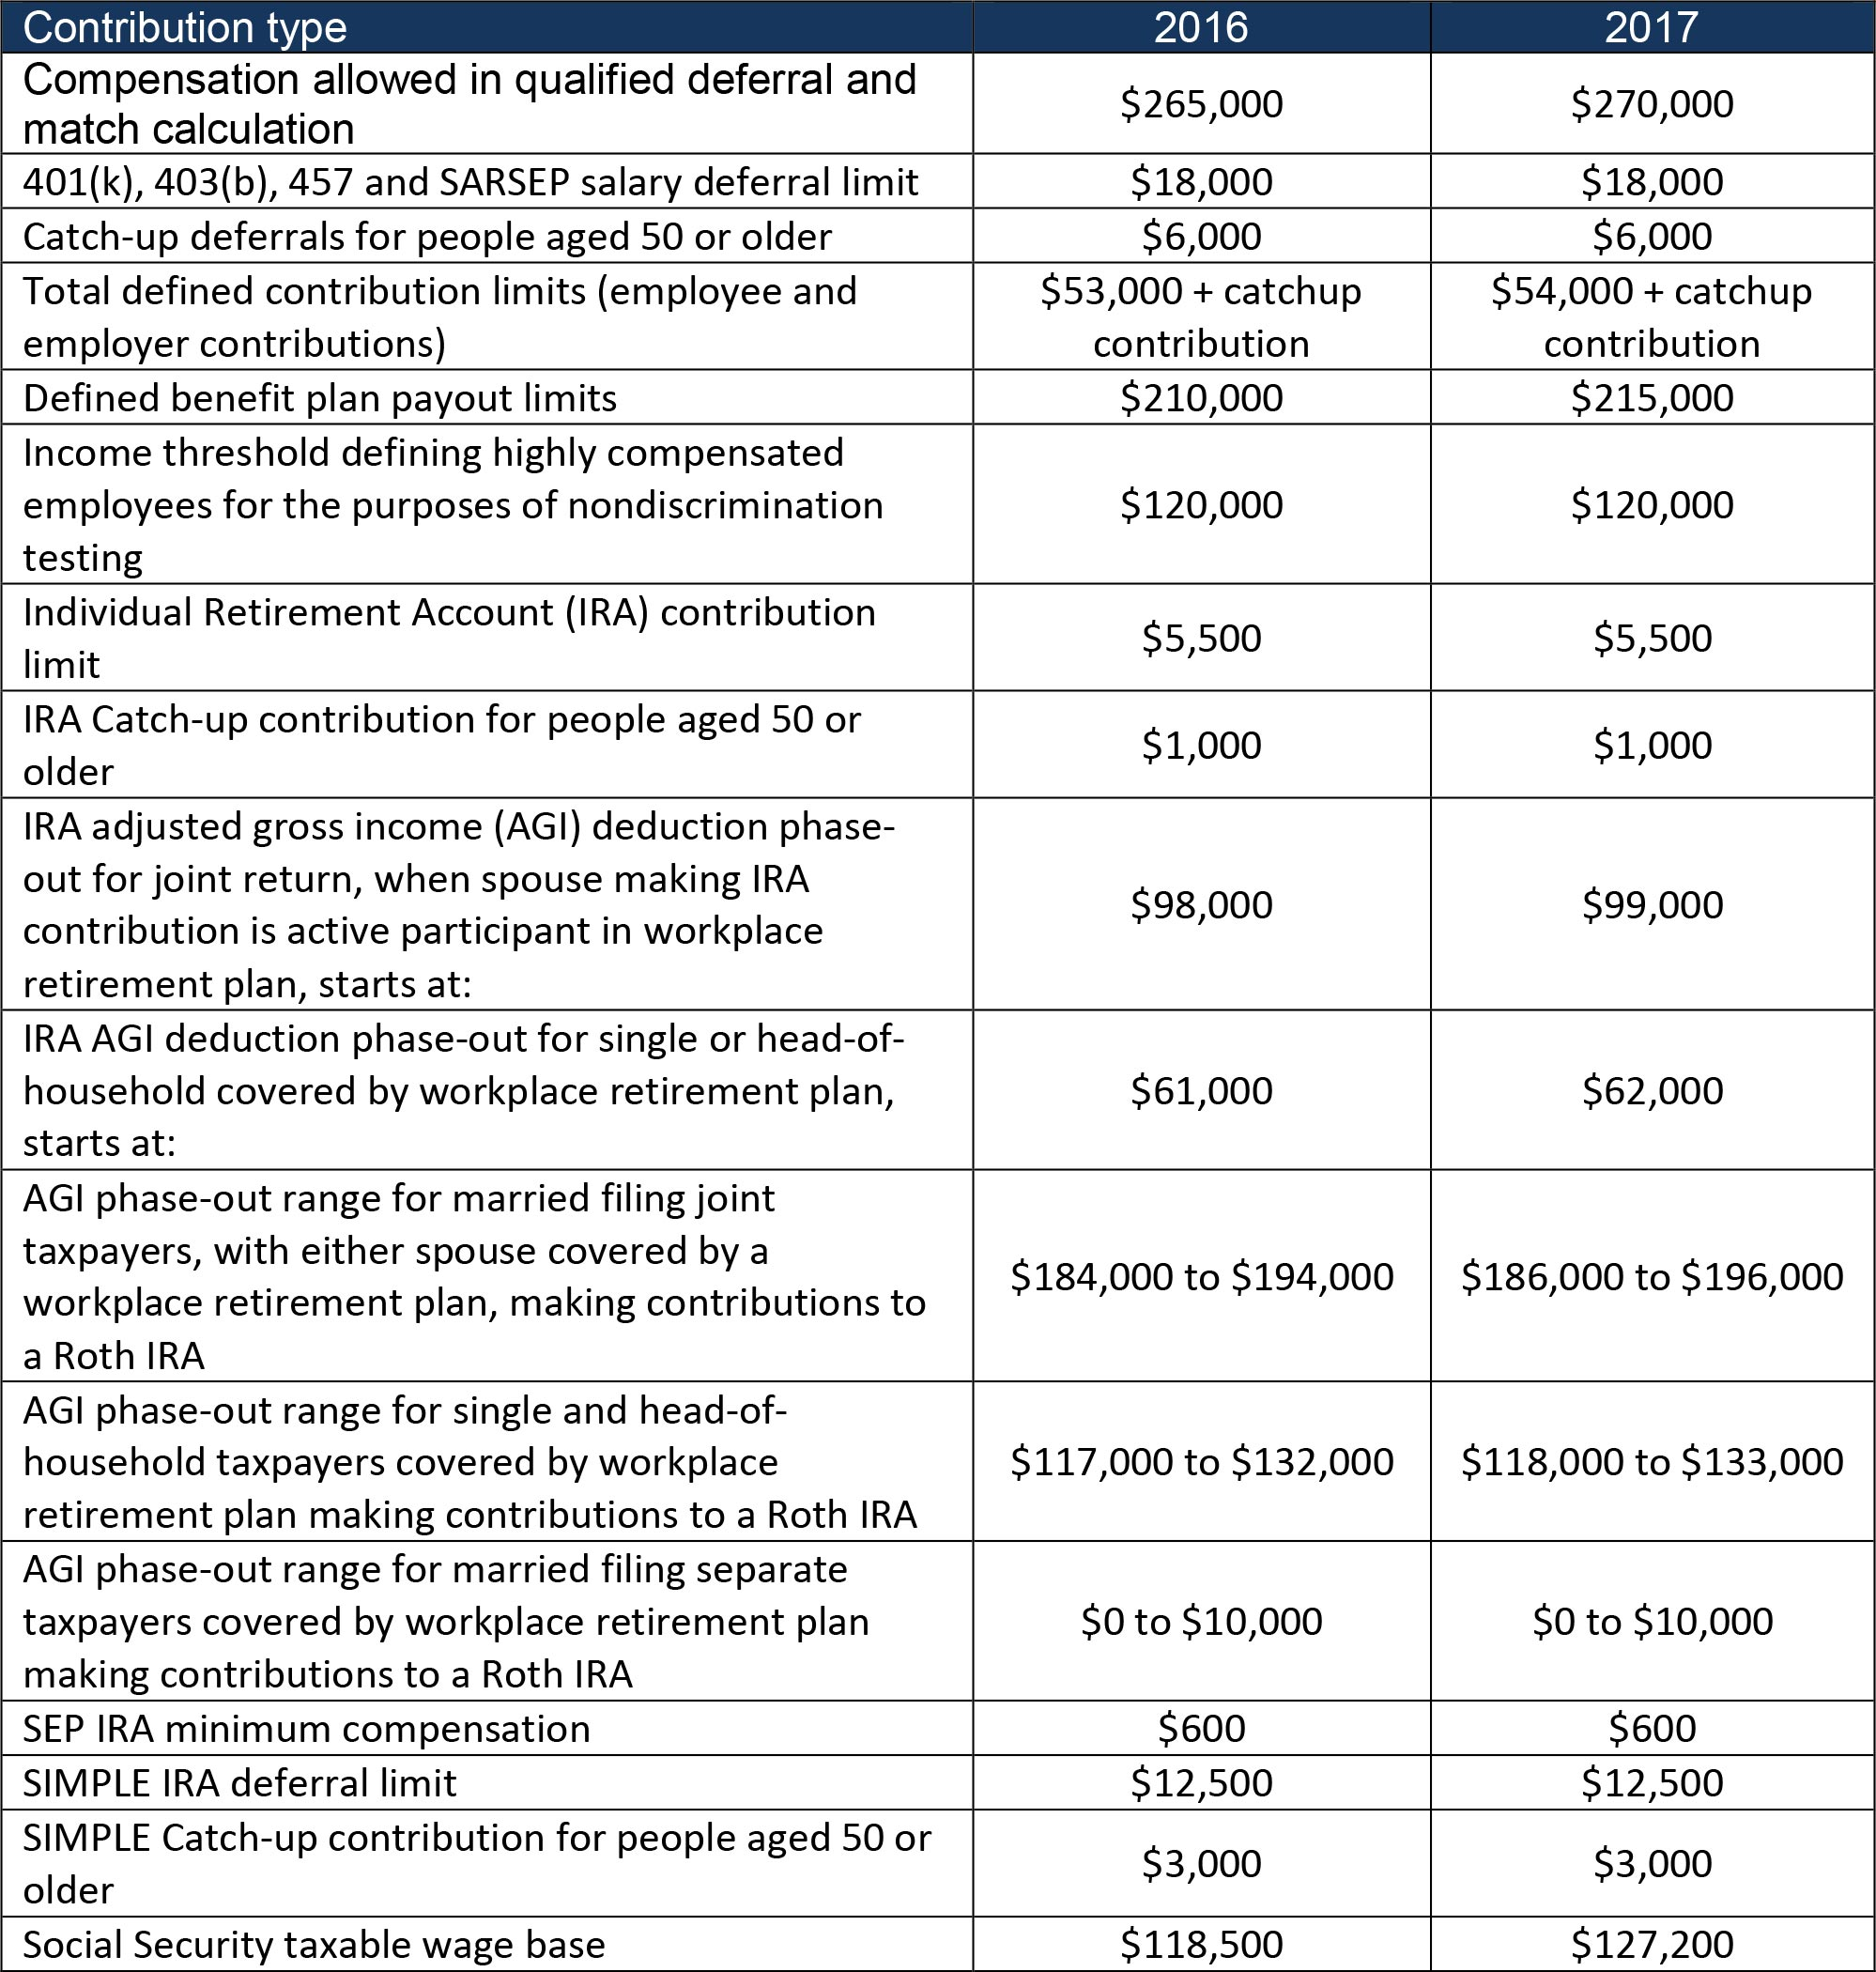 Pension Plan 2017 table